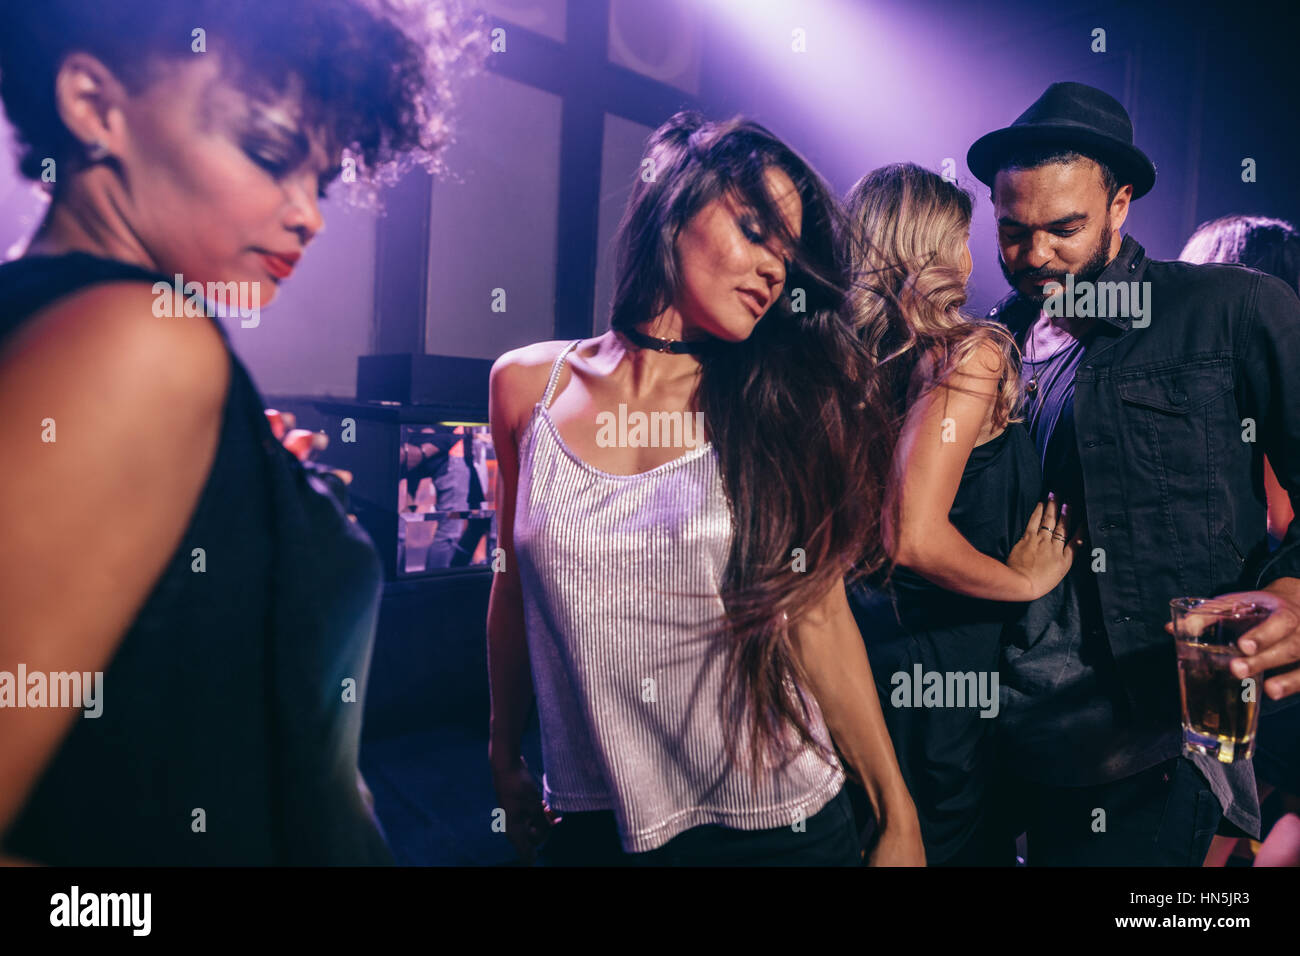 Young woman dancing at party with friends near by. Group of young people having fun at nightclub. - Stock Image